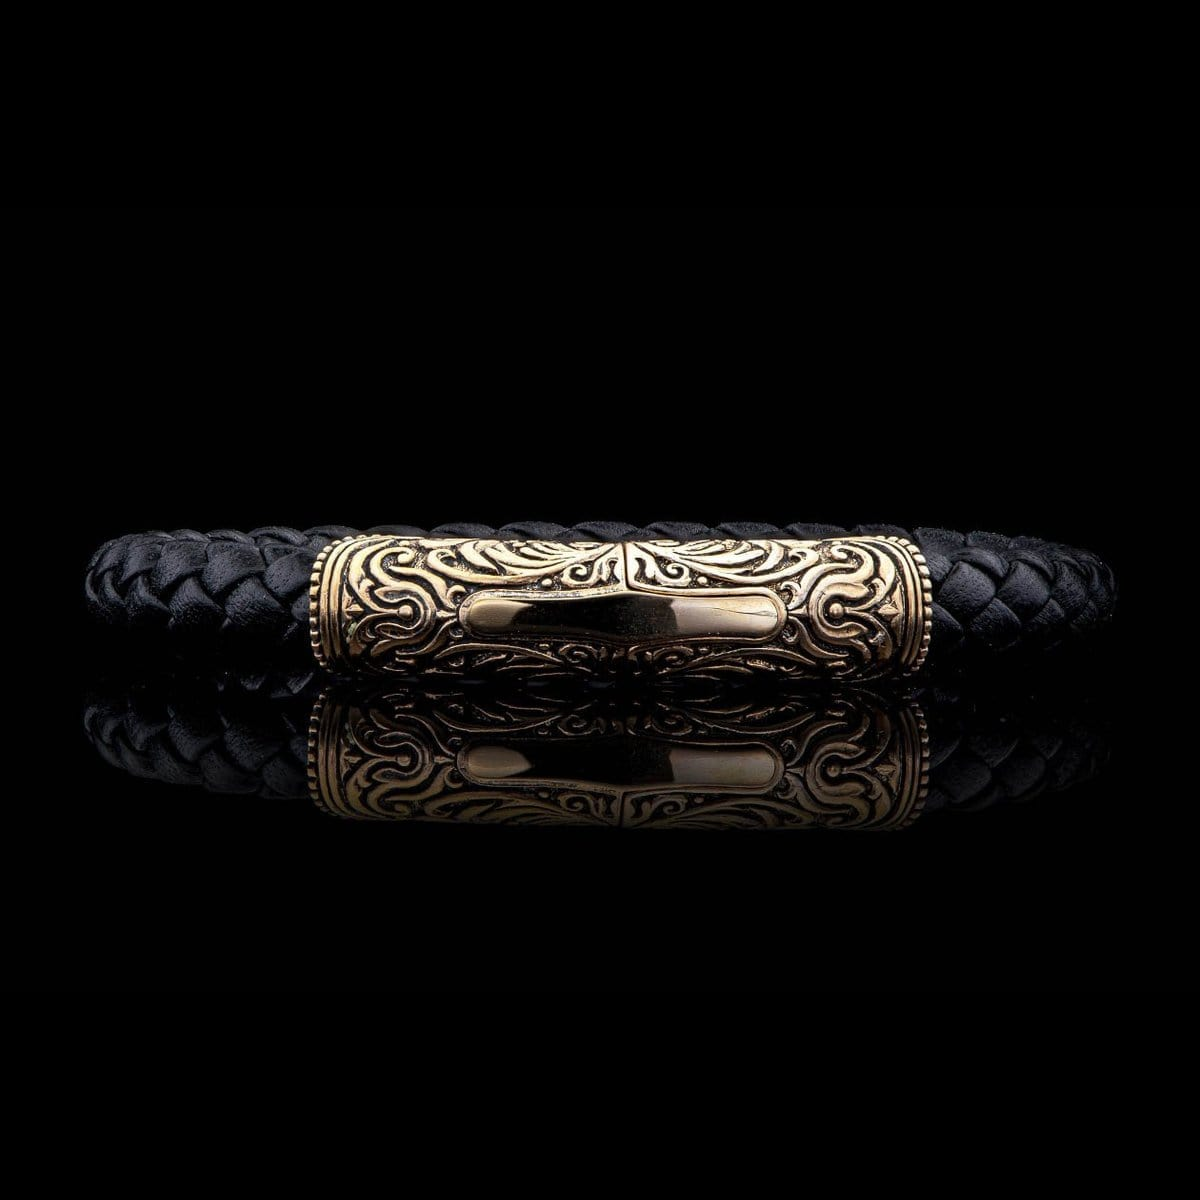 Men's Milan Bracelet - LC196 TBZ BLK-William Henry-Renee Taylor Gallery